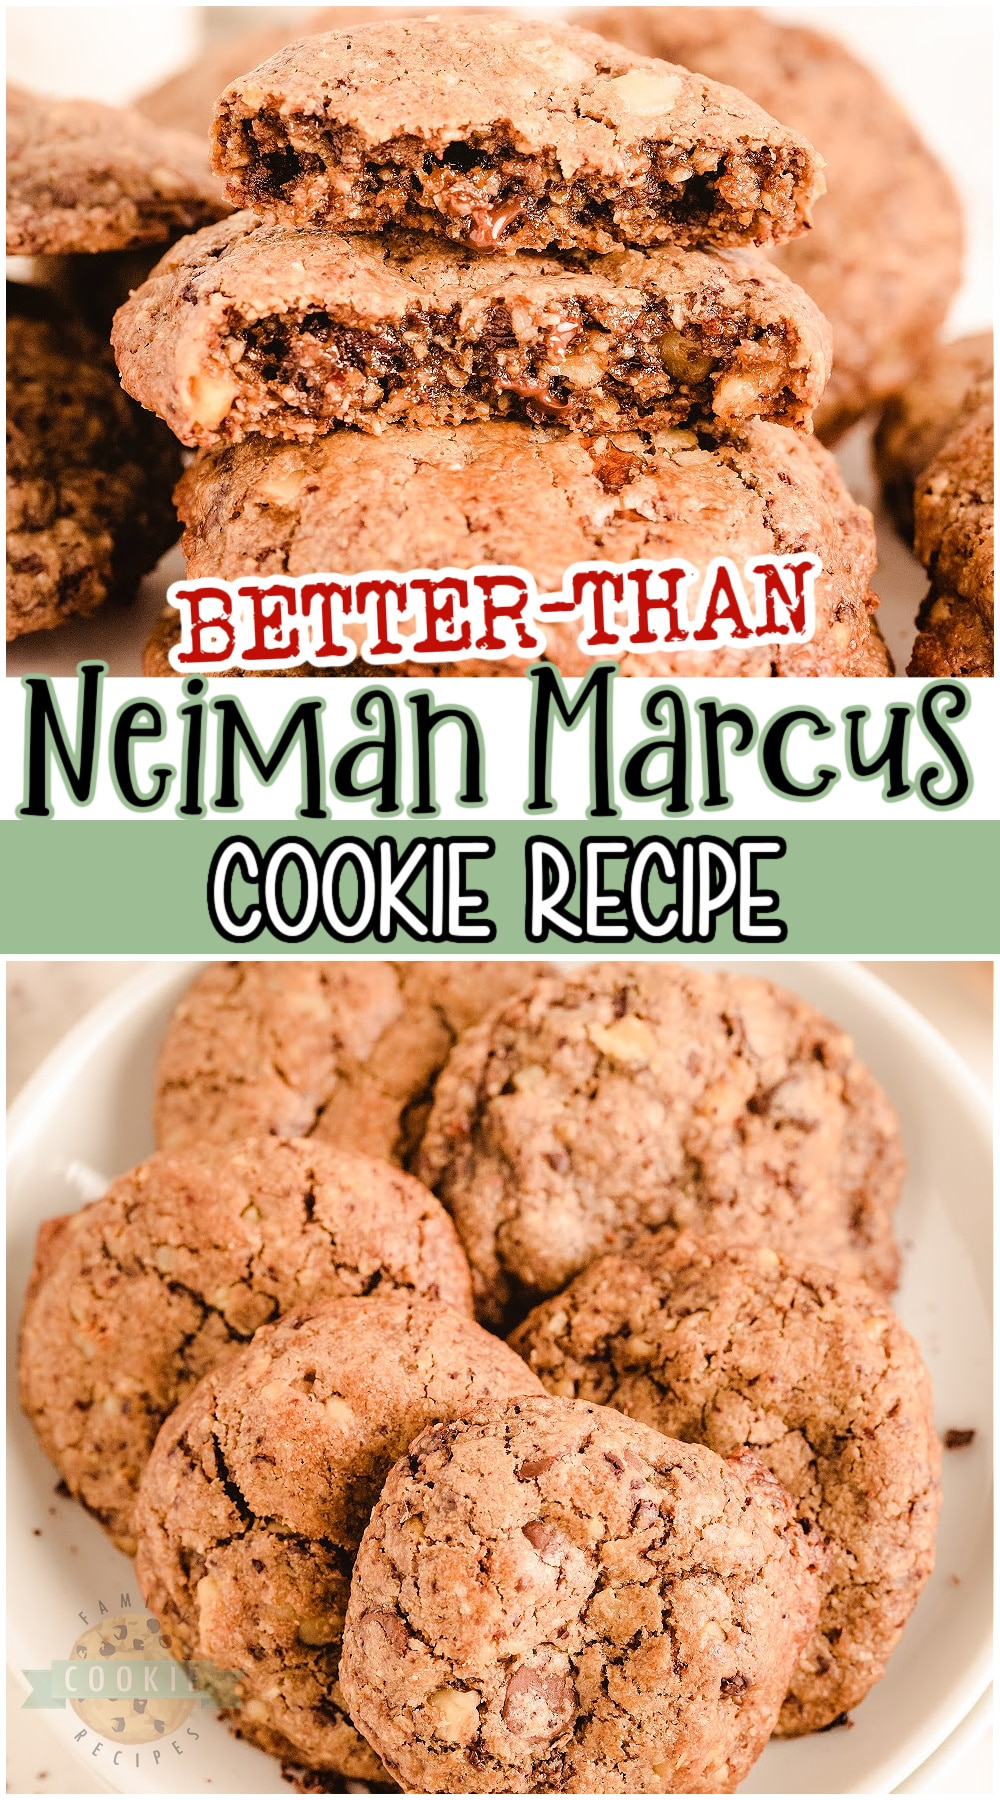 """""""Better Than"""" Neiman Marcus Cookies are fabulous oatmeal chocolate chip cookies made with grated chocolate! Thick & chewy oatmeal cookie recipe with great chocolate flavor that everyone loves! And bonus- the recipe is FREE! #cookies #chocolate #oatmeal #NeimanMarcus #easyrecipe from FAMILY COOKIE RECIPES via @familycookierecipes"""